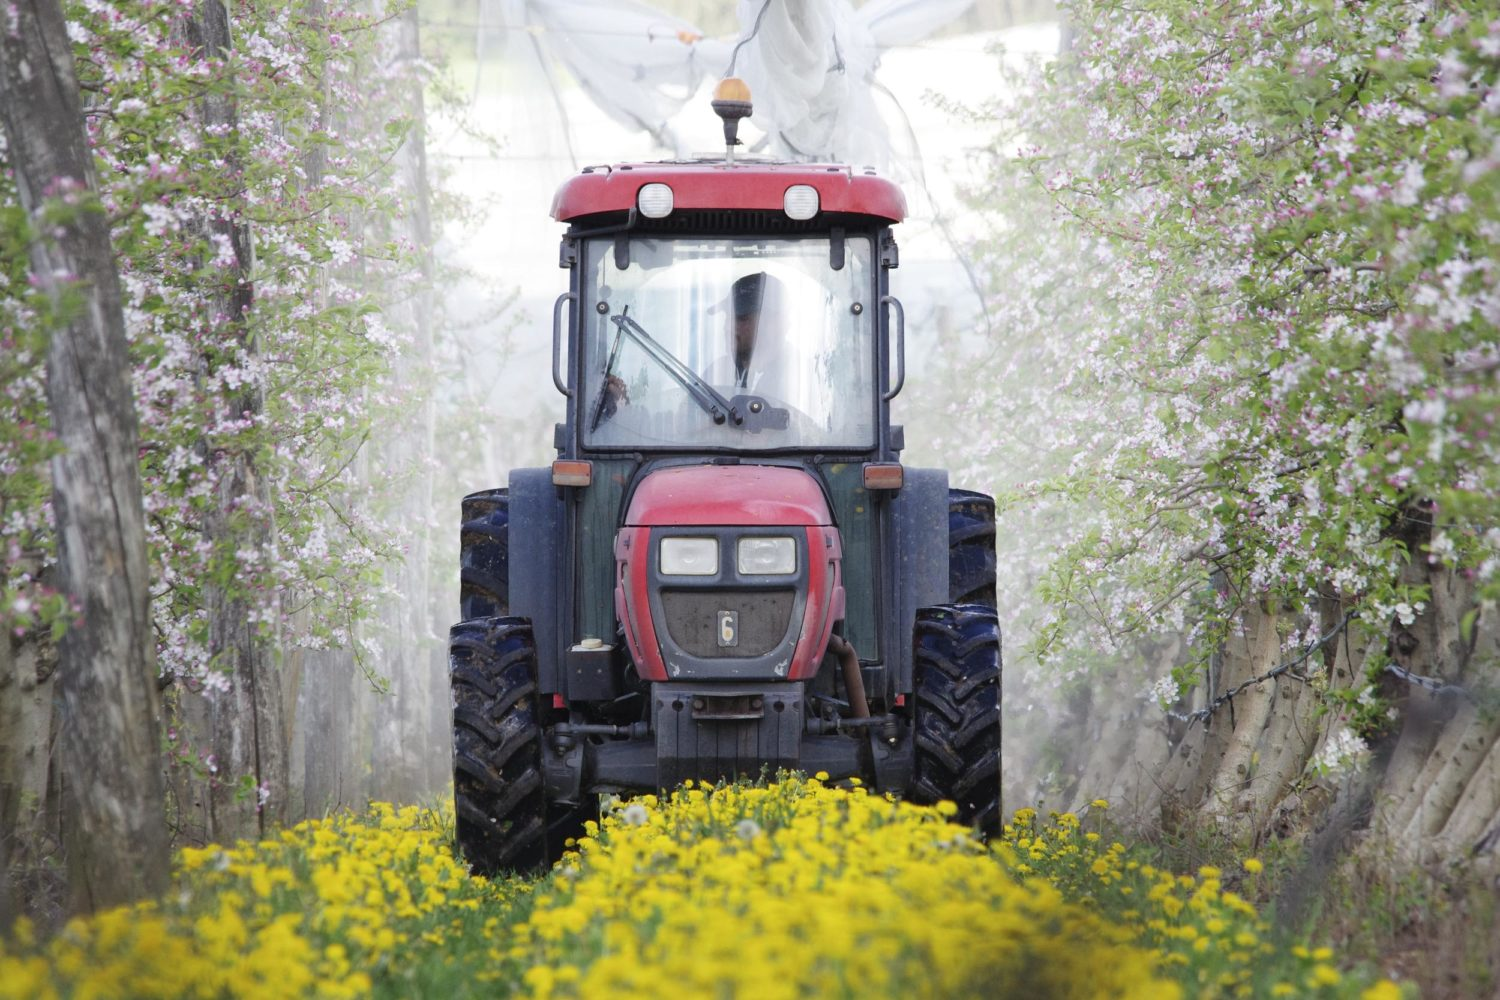 Tractor spraying pesticides on apple plantation in France. Greenpeace conducted a documentation at multiple apple plantation locations in France, in the orchards and in some pesticides rooms where farmers store the products. Greenpeace aims to show the intense use of chemical pesticides in apple production despite its negative impacts on both the human health and the environment.